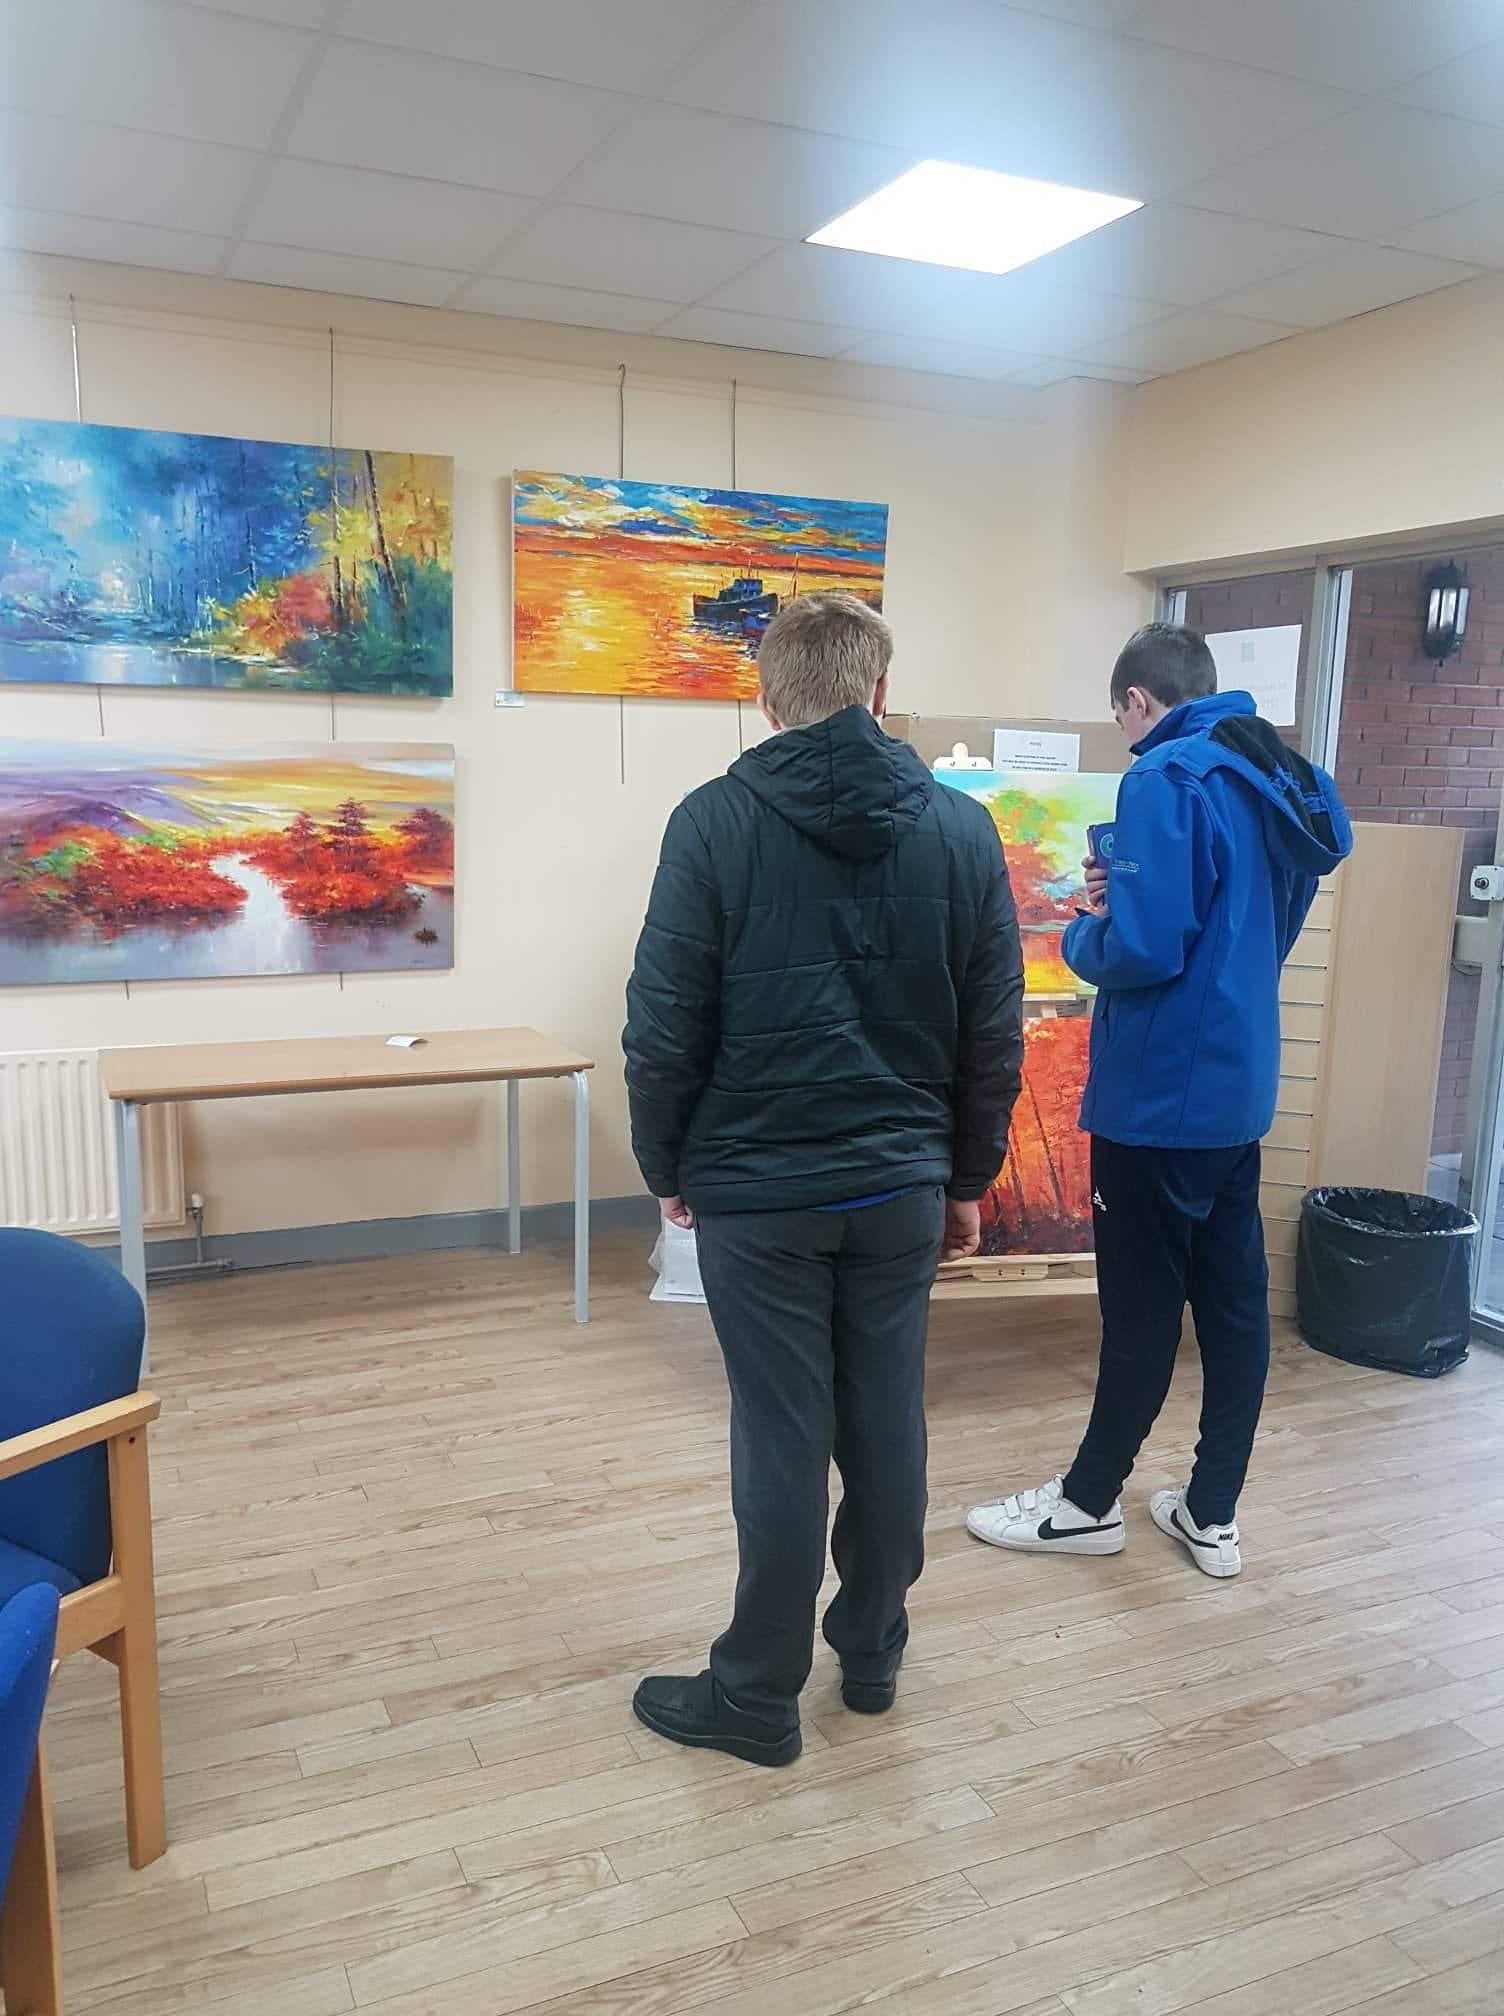 AJ Dee and Alan Wallace admiring the Art Exhibition in the local Library